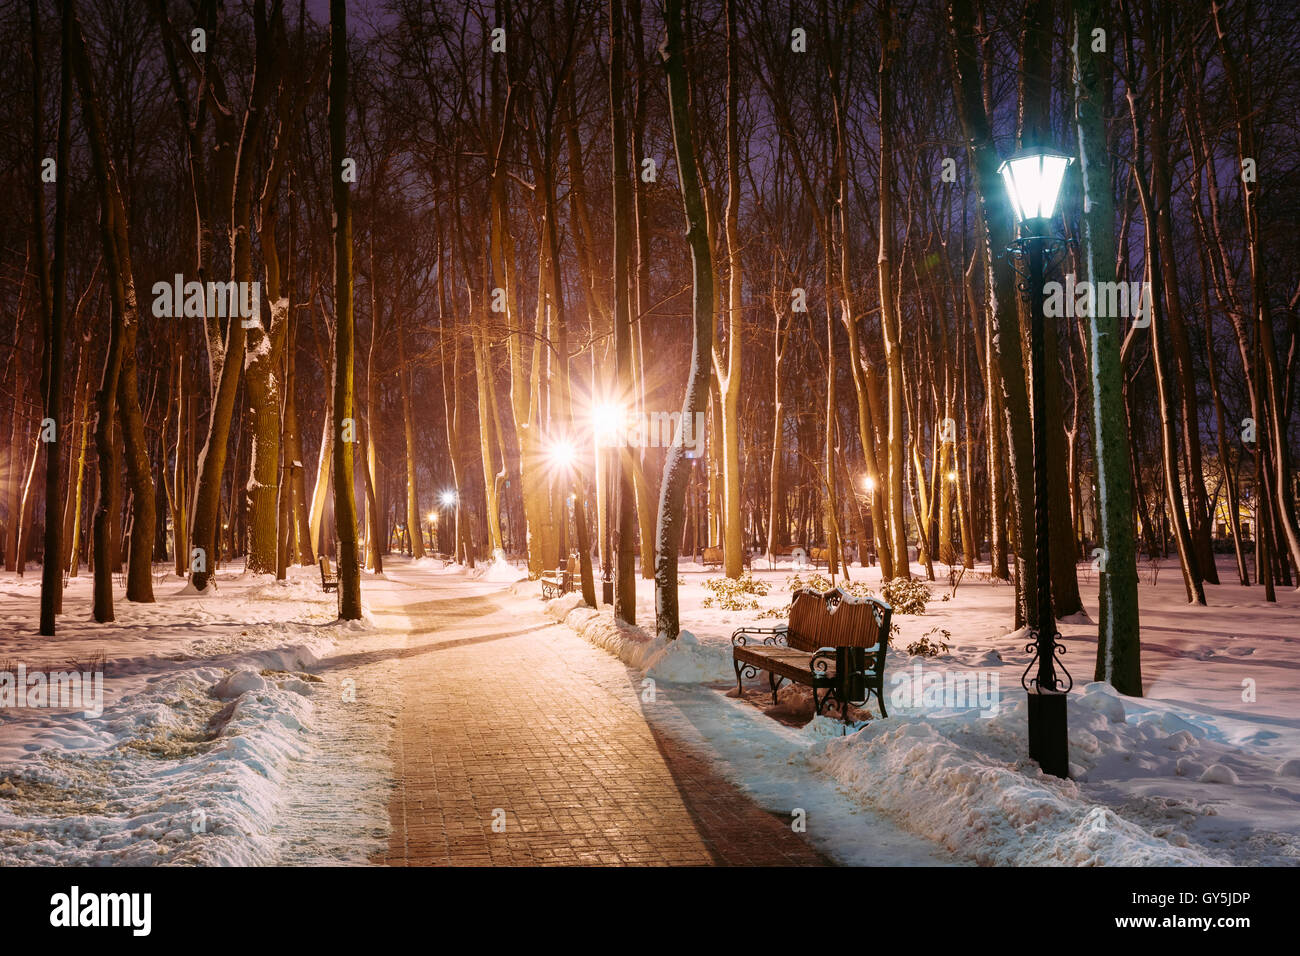 park benches at night stockfotos park benches at night bilder alamy. Black Bedroom Furniture Sets. Home Design Ideas